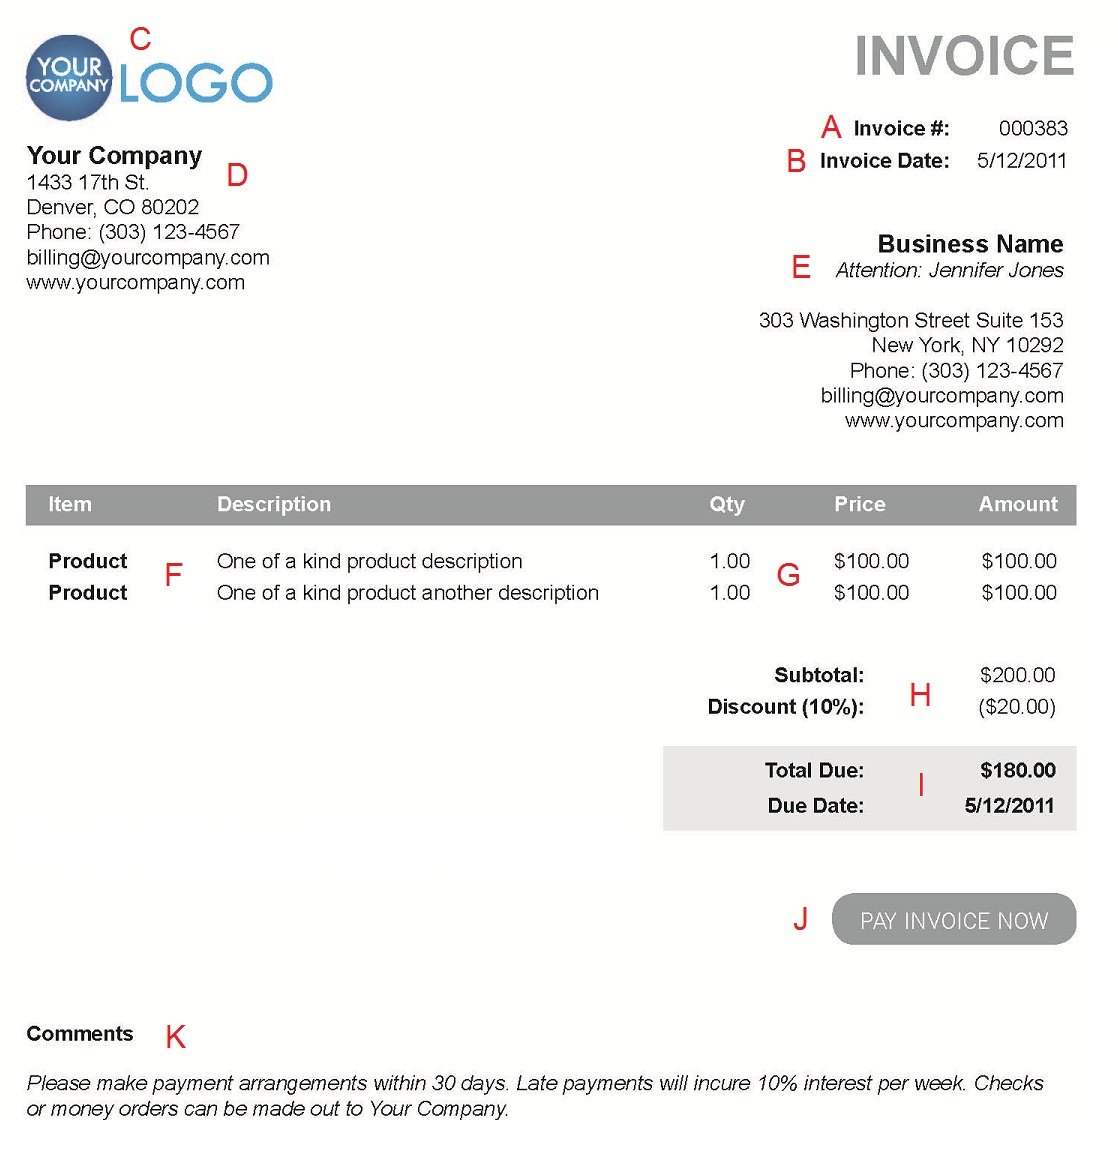 Gpwaus  Unique The  Different Sections Of An Electronic Payment Invoice With Exquisite A  With Adorable Invoice Accounting Also Vendor Invoices In Addition Jeep Invoice Price And Legal Invoice Template As Well As Invoice Envelopes Additionally Commercial Invoices From Paysimplecom With Gpwaus  Exquisite The  Different Sections Of An Electronic Payment Invoice With Adorable A  And Unique Invoice Accounting Also Vendor Invoices In Addition Jeep Invoice Price From Paysimplecom